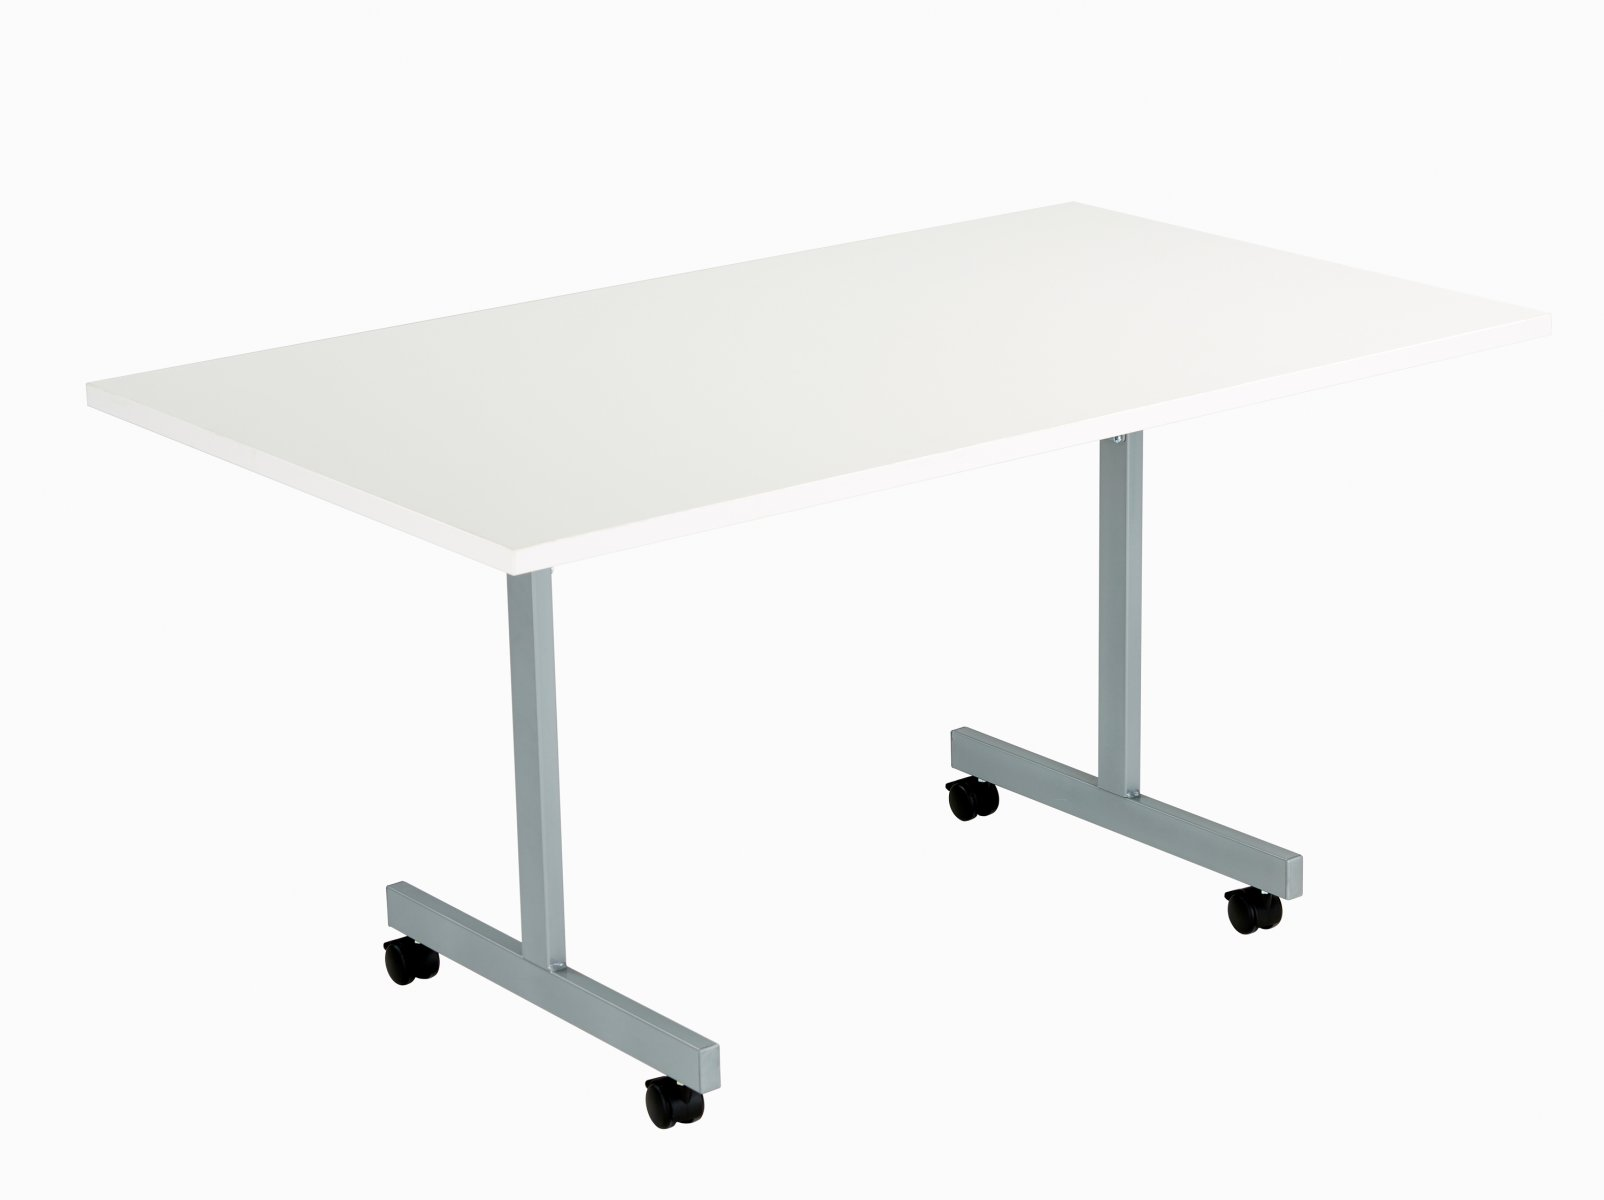 One Eighty Tilting Table 1400 X 800 Silver Legs White Rectangular Top